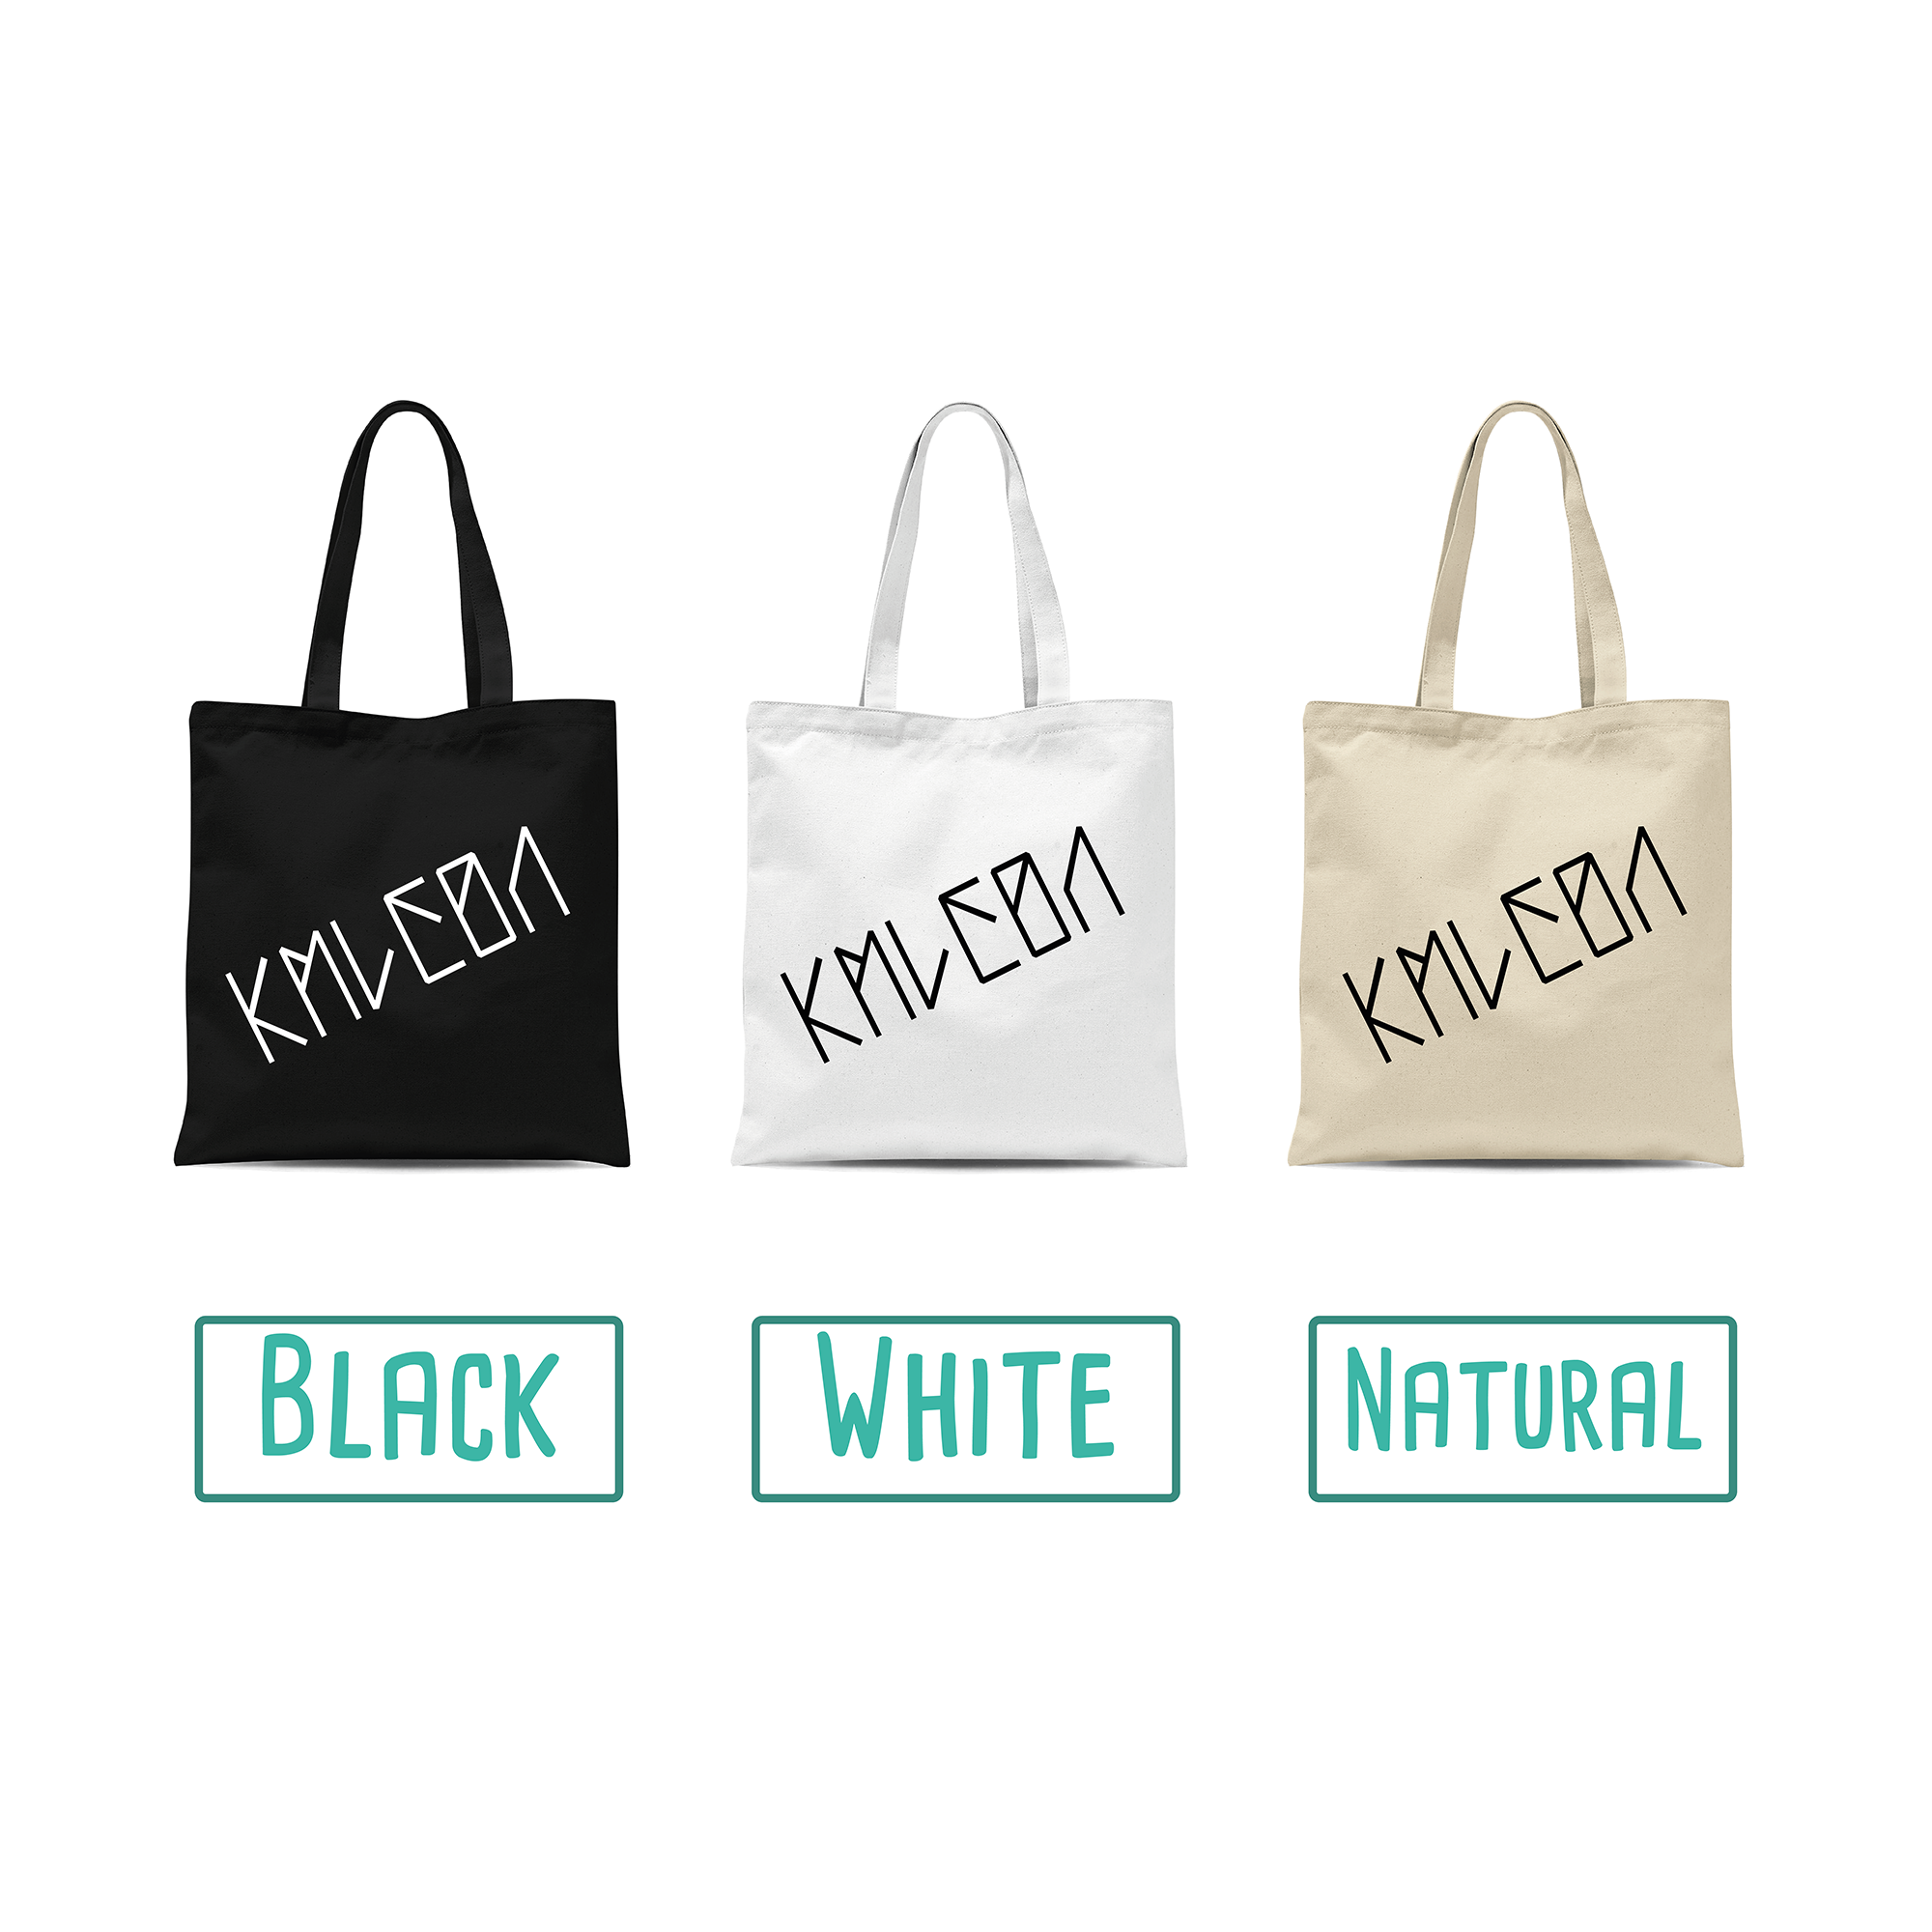 Colour options for tote bags by KMLeon.